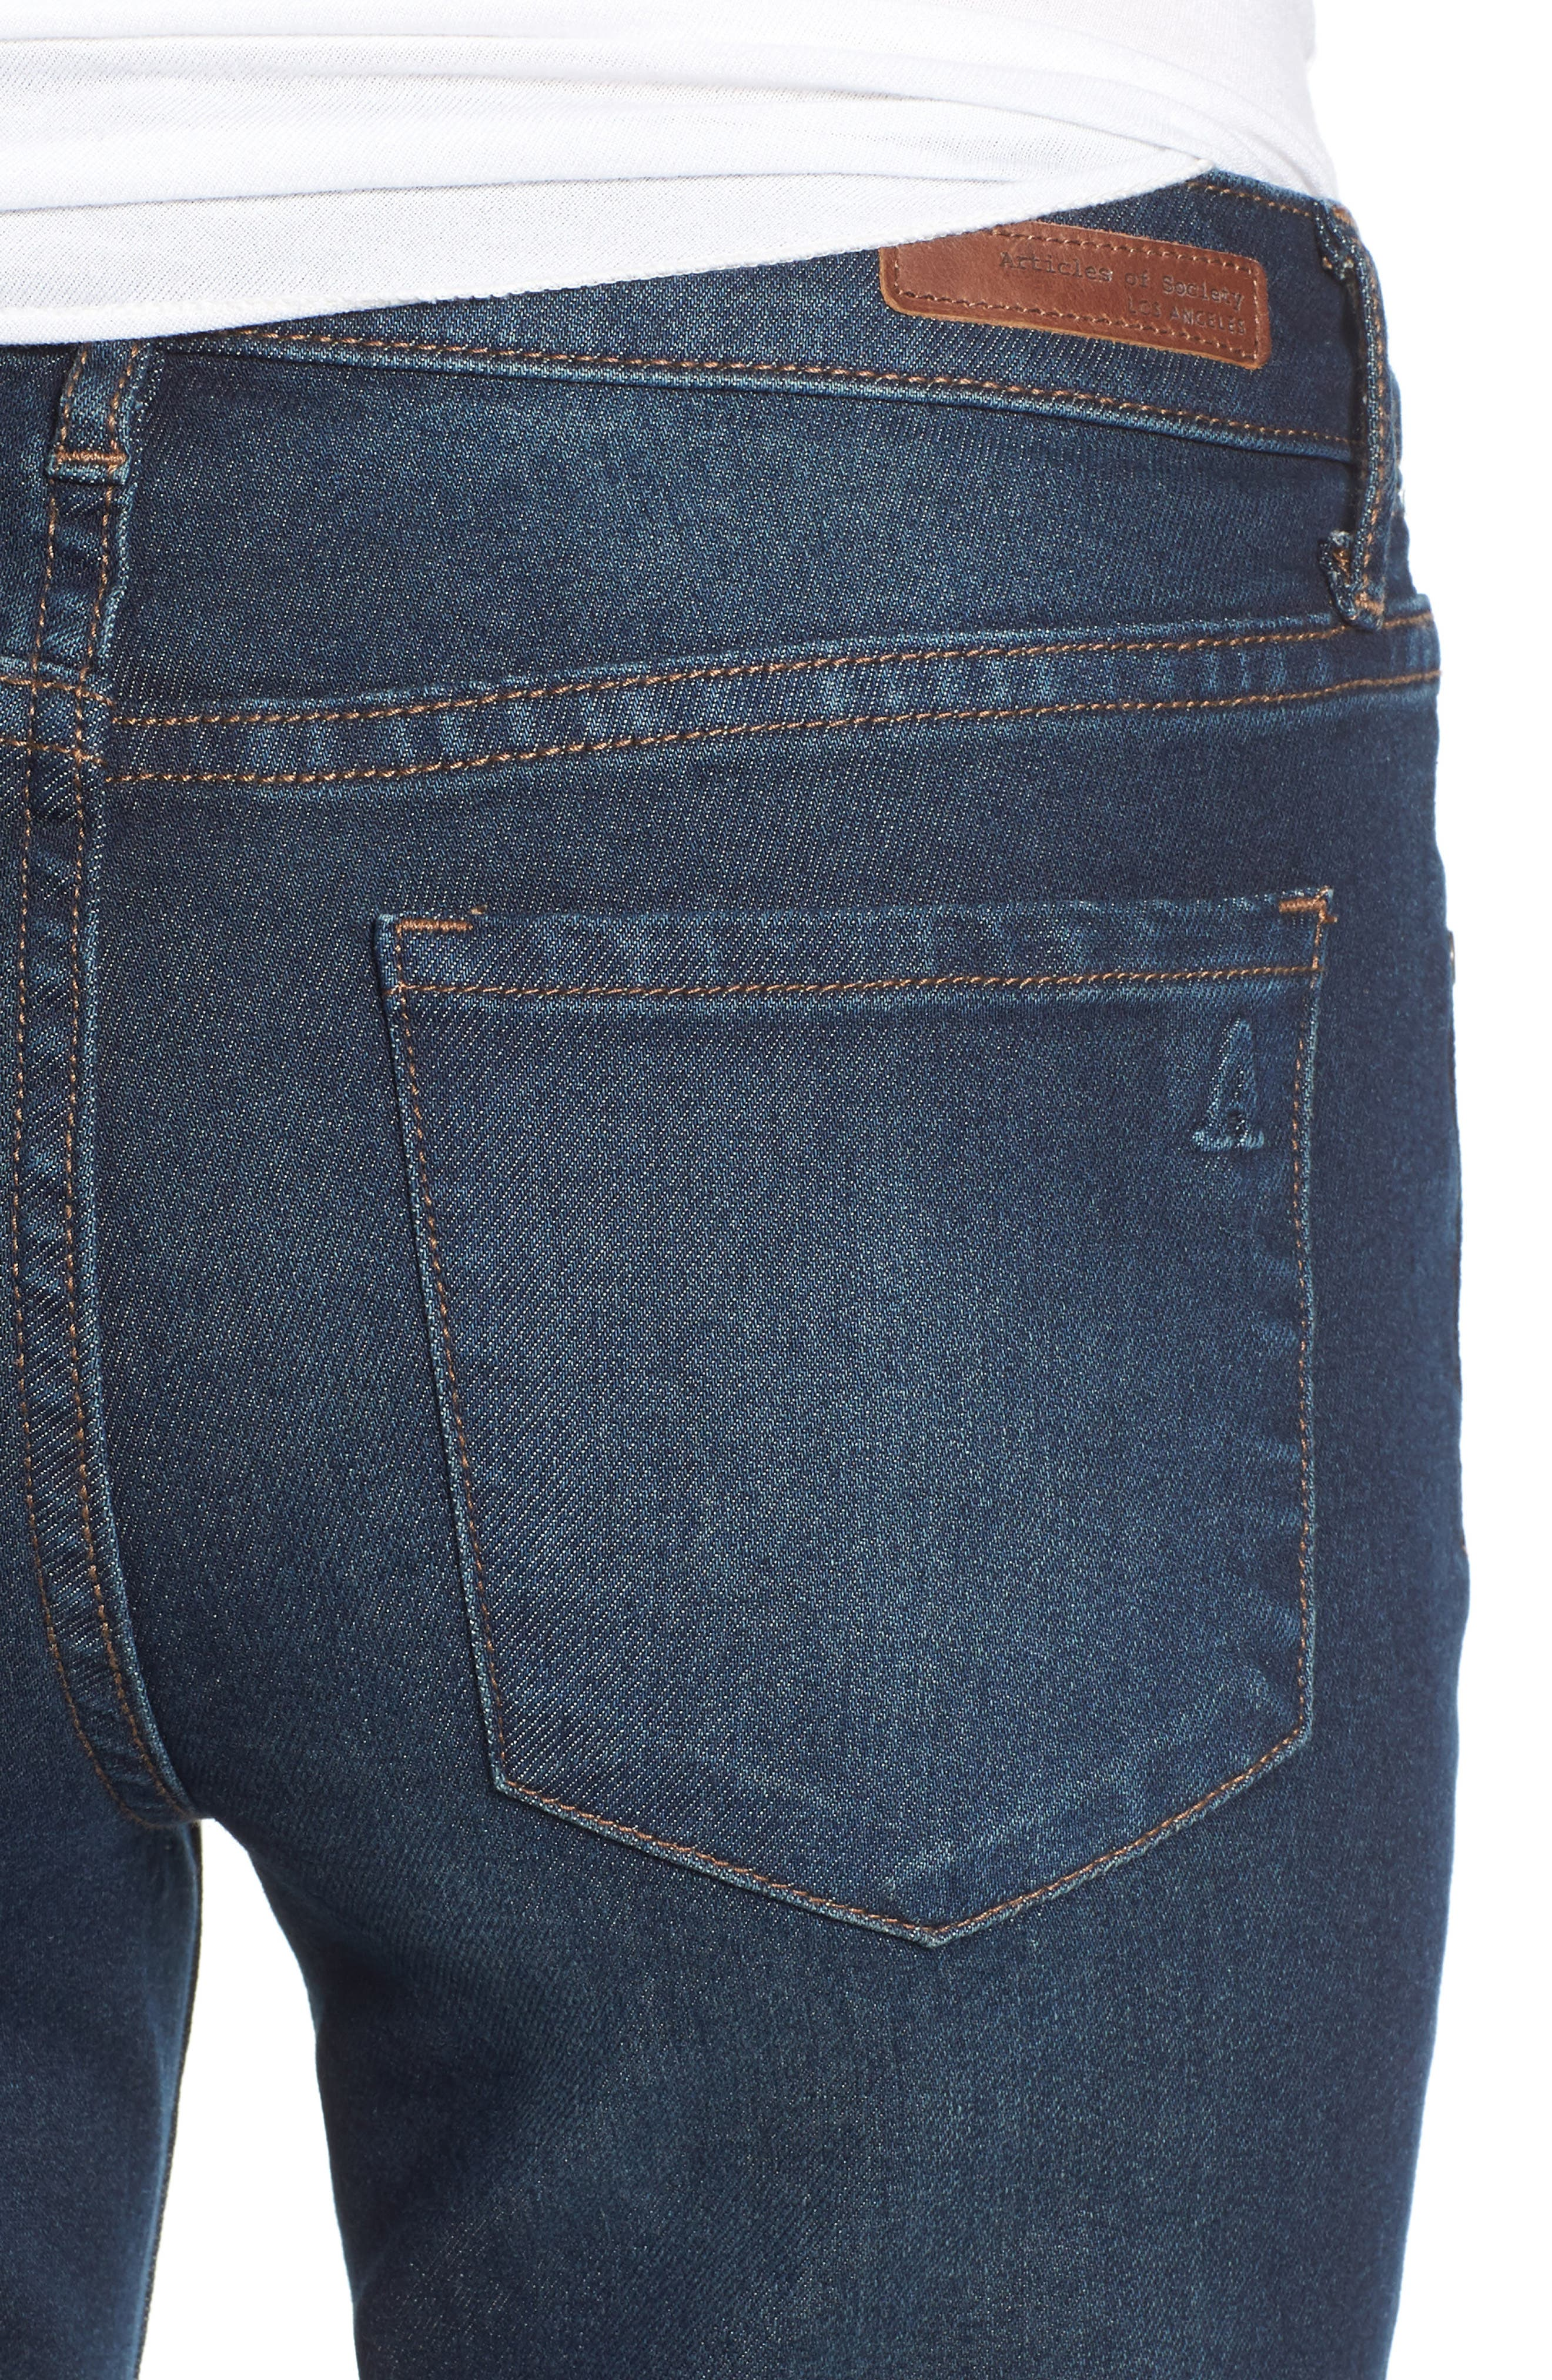 Faith Flare Jeans,                             Alternate thumbnail 4, color,                             NORTHPORT DARK WASH